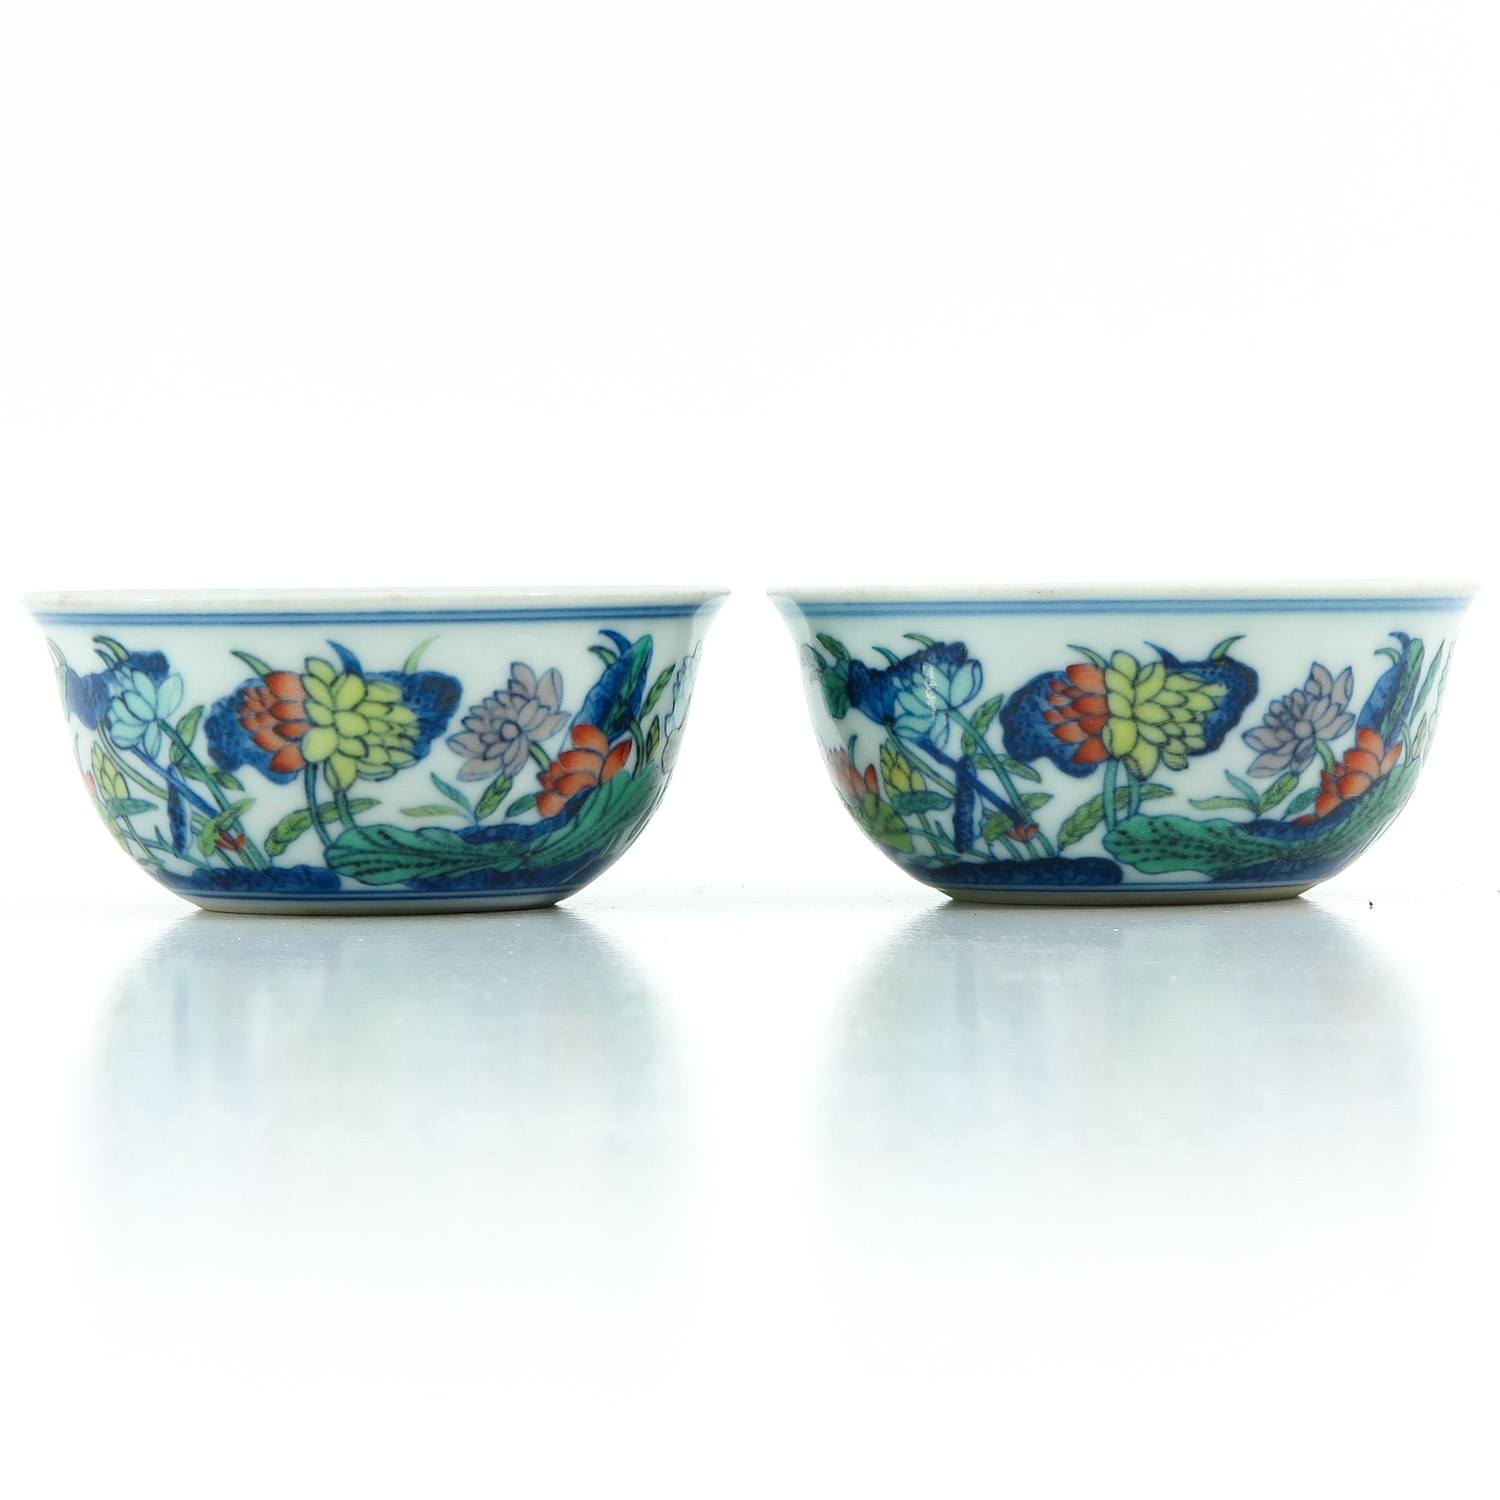 A Pair of Doucai Decor Cups - Image 4 of 10